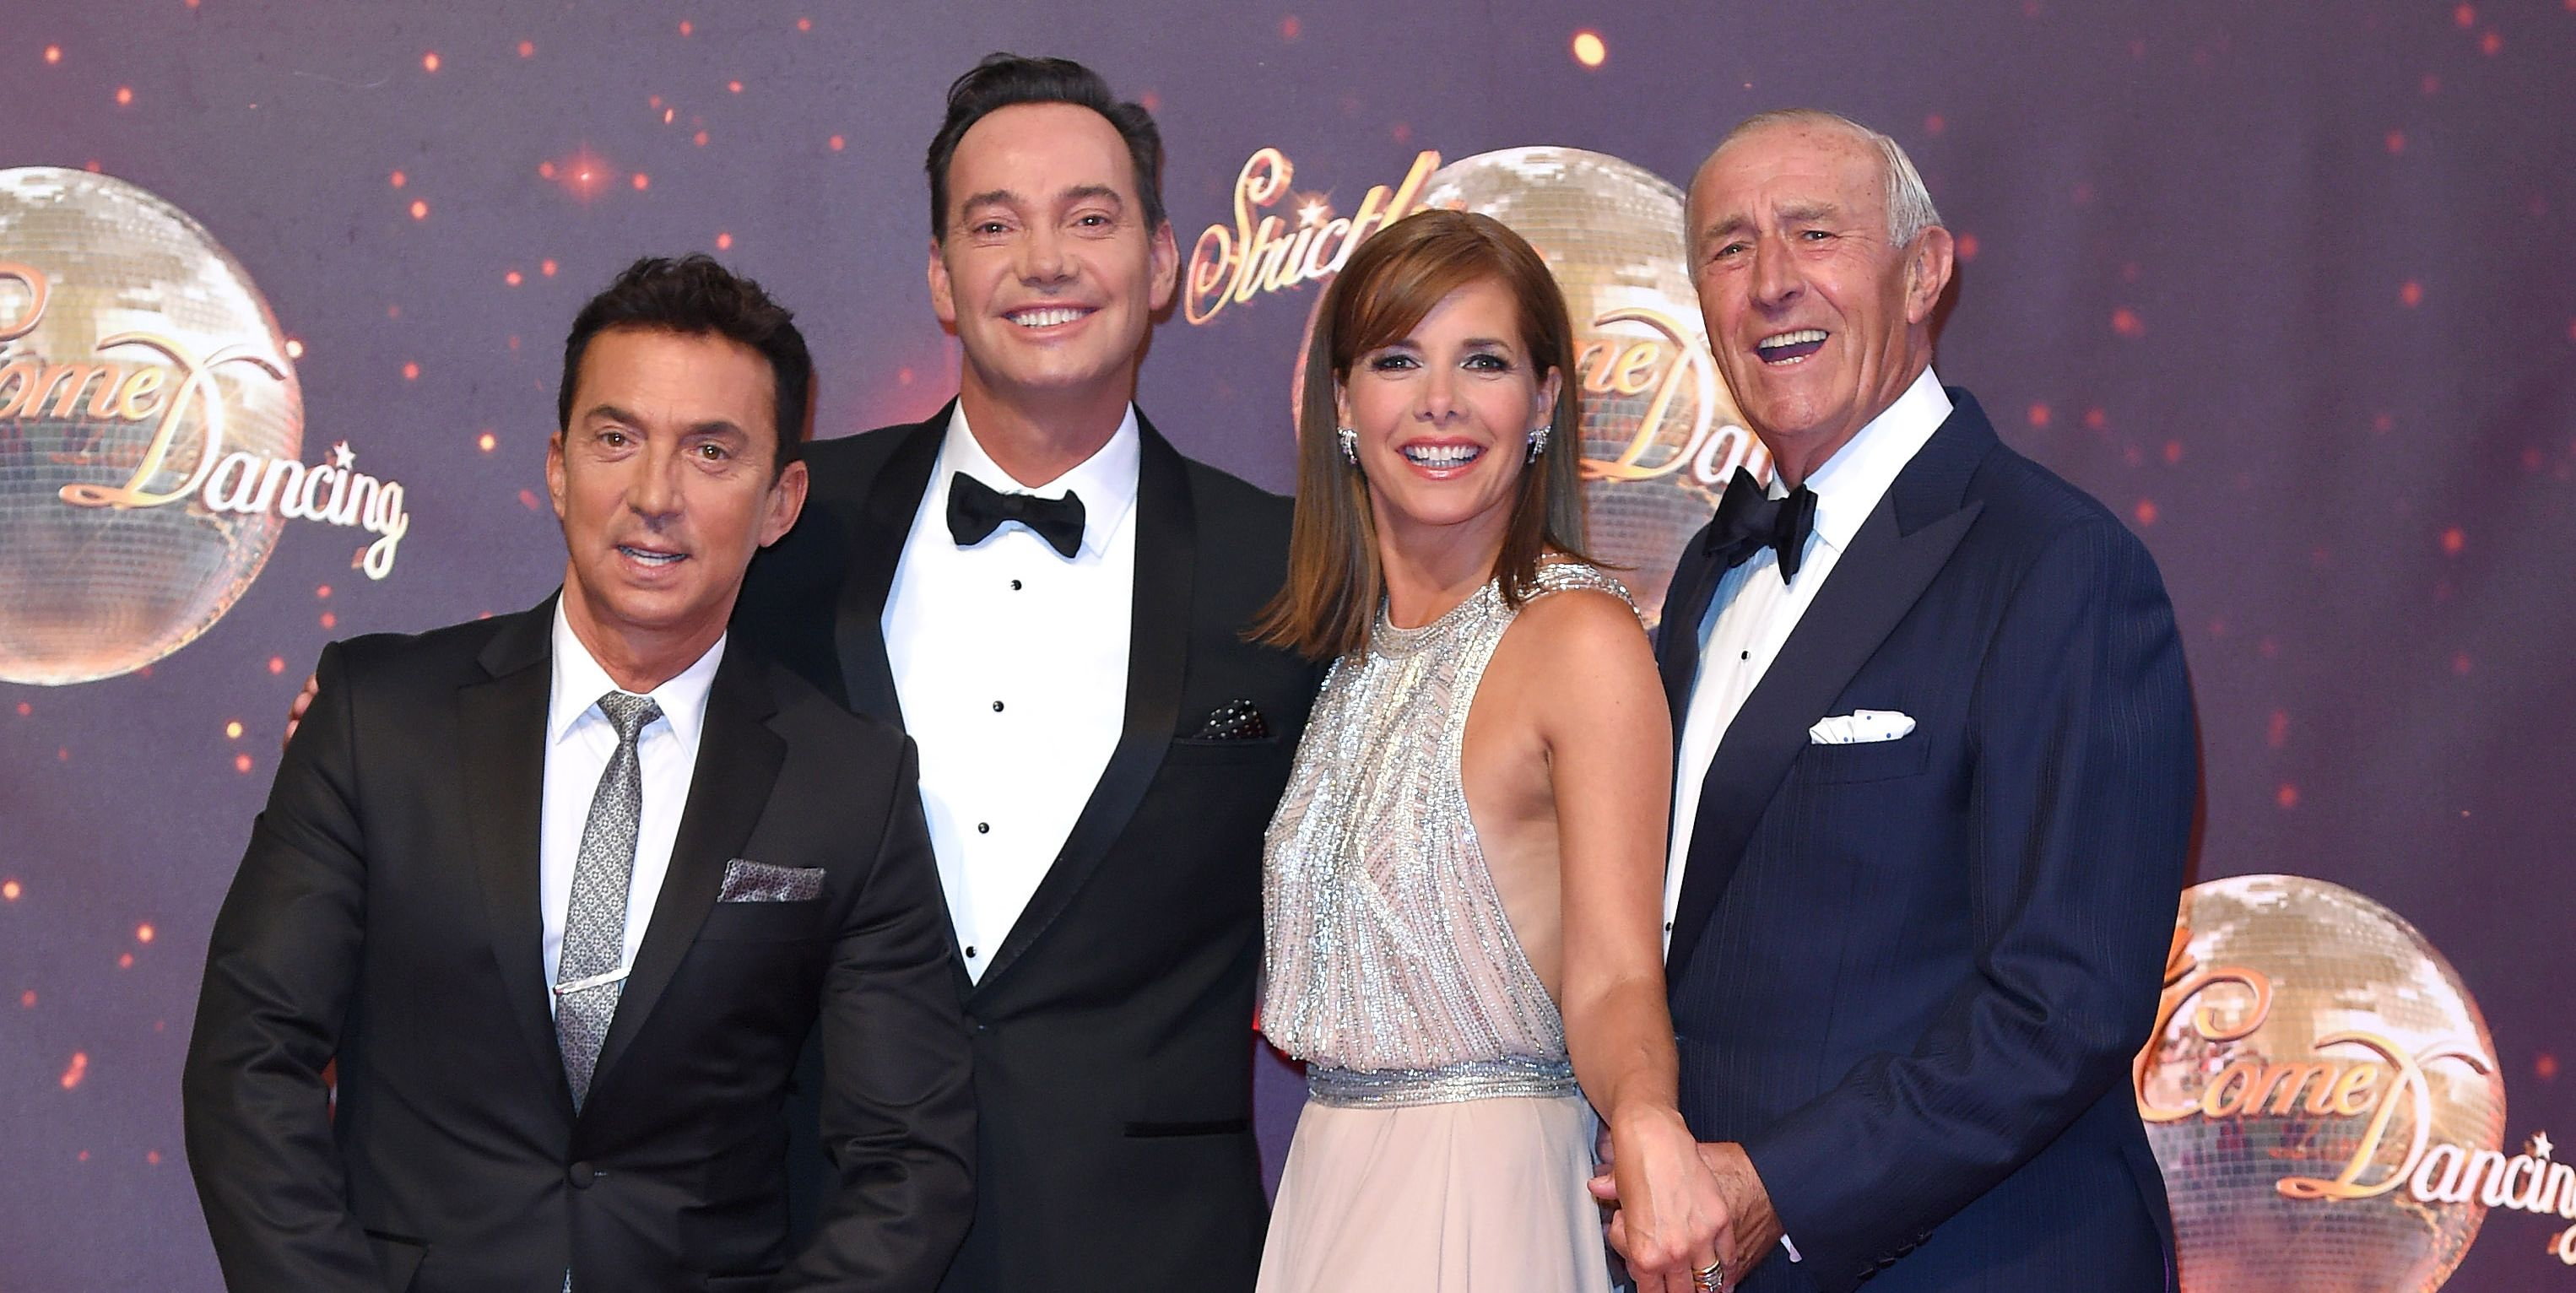 Len Goodman, Strictly Come Dancing, Strictly judges, Strictly Come Dancing 2018, Darcey Bussell, Craig Revel-Horwood,